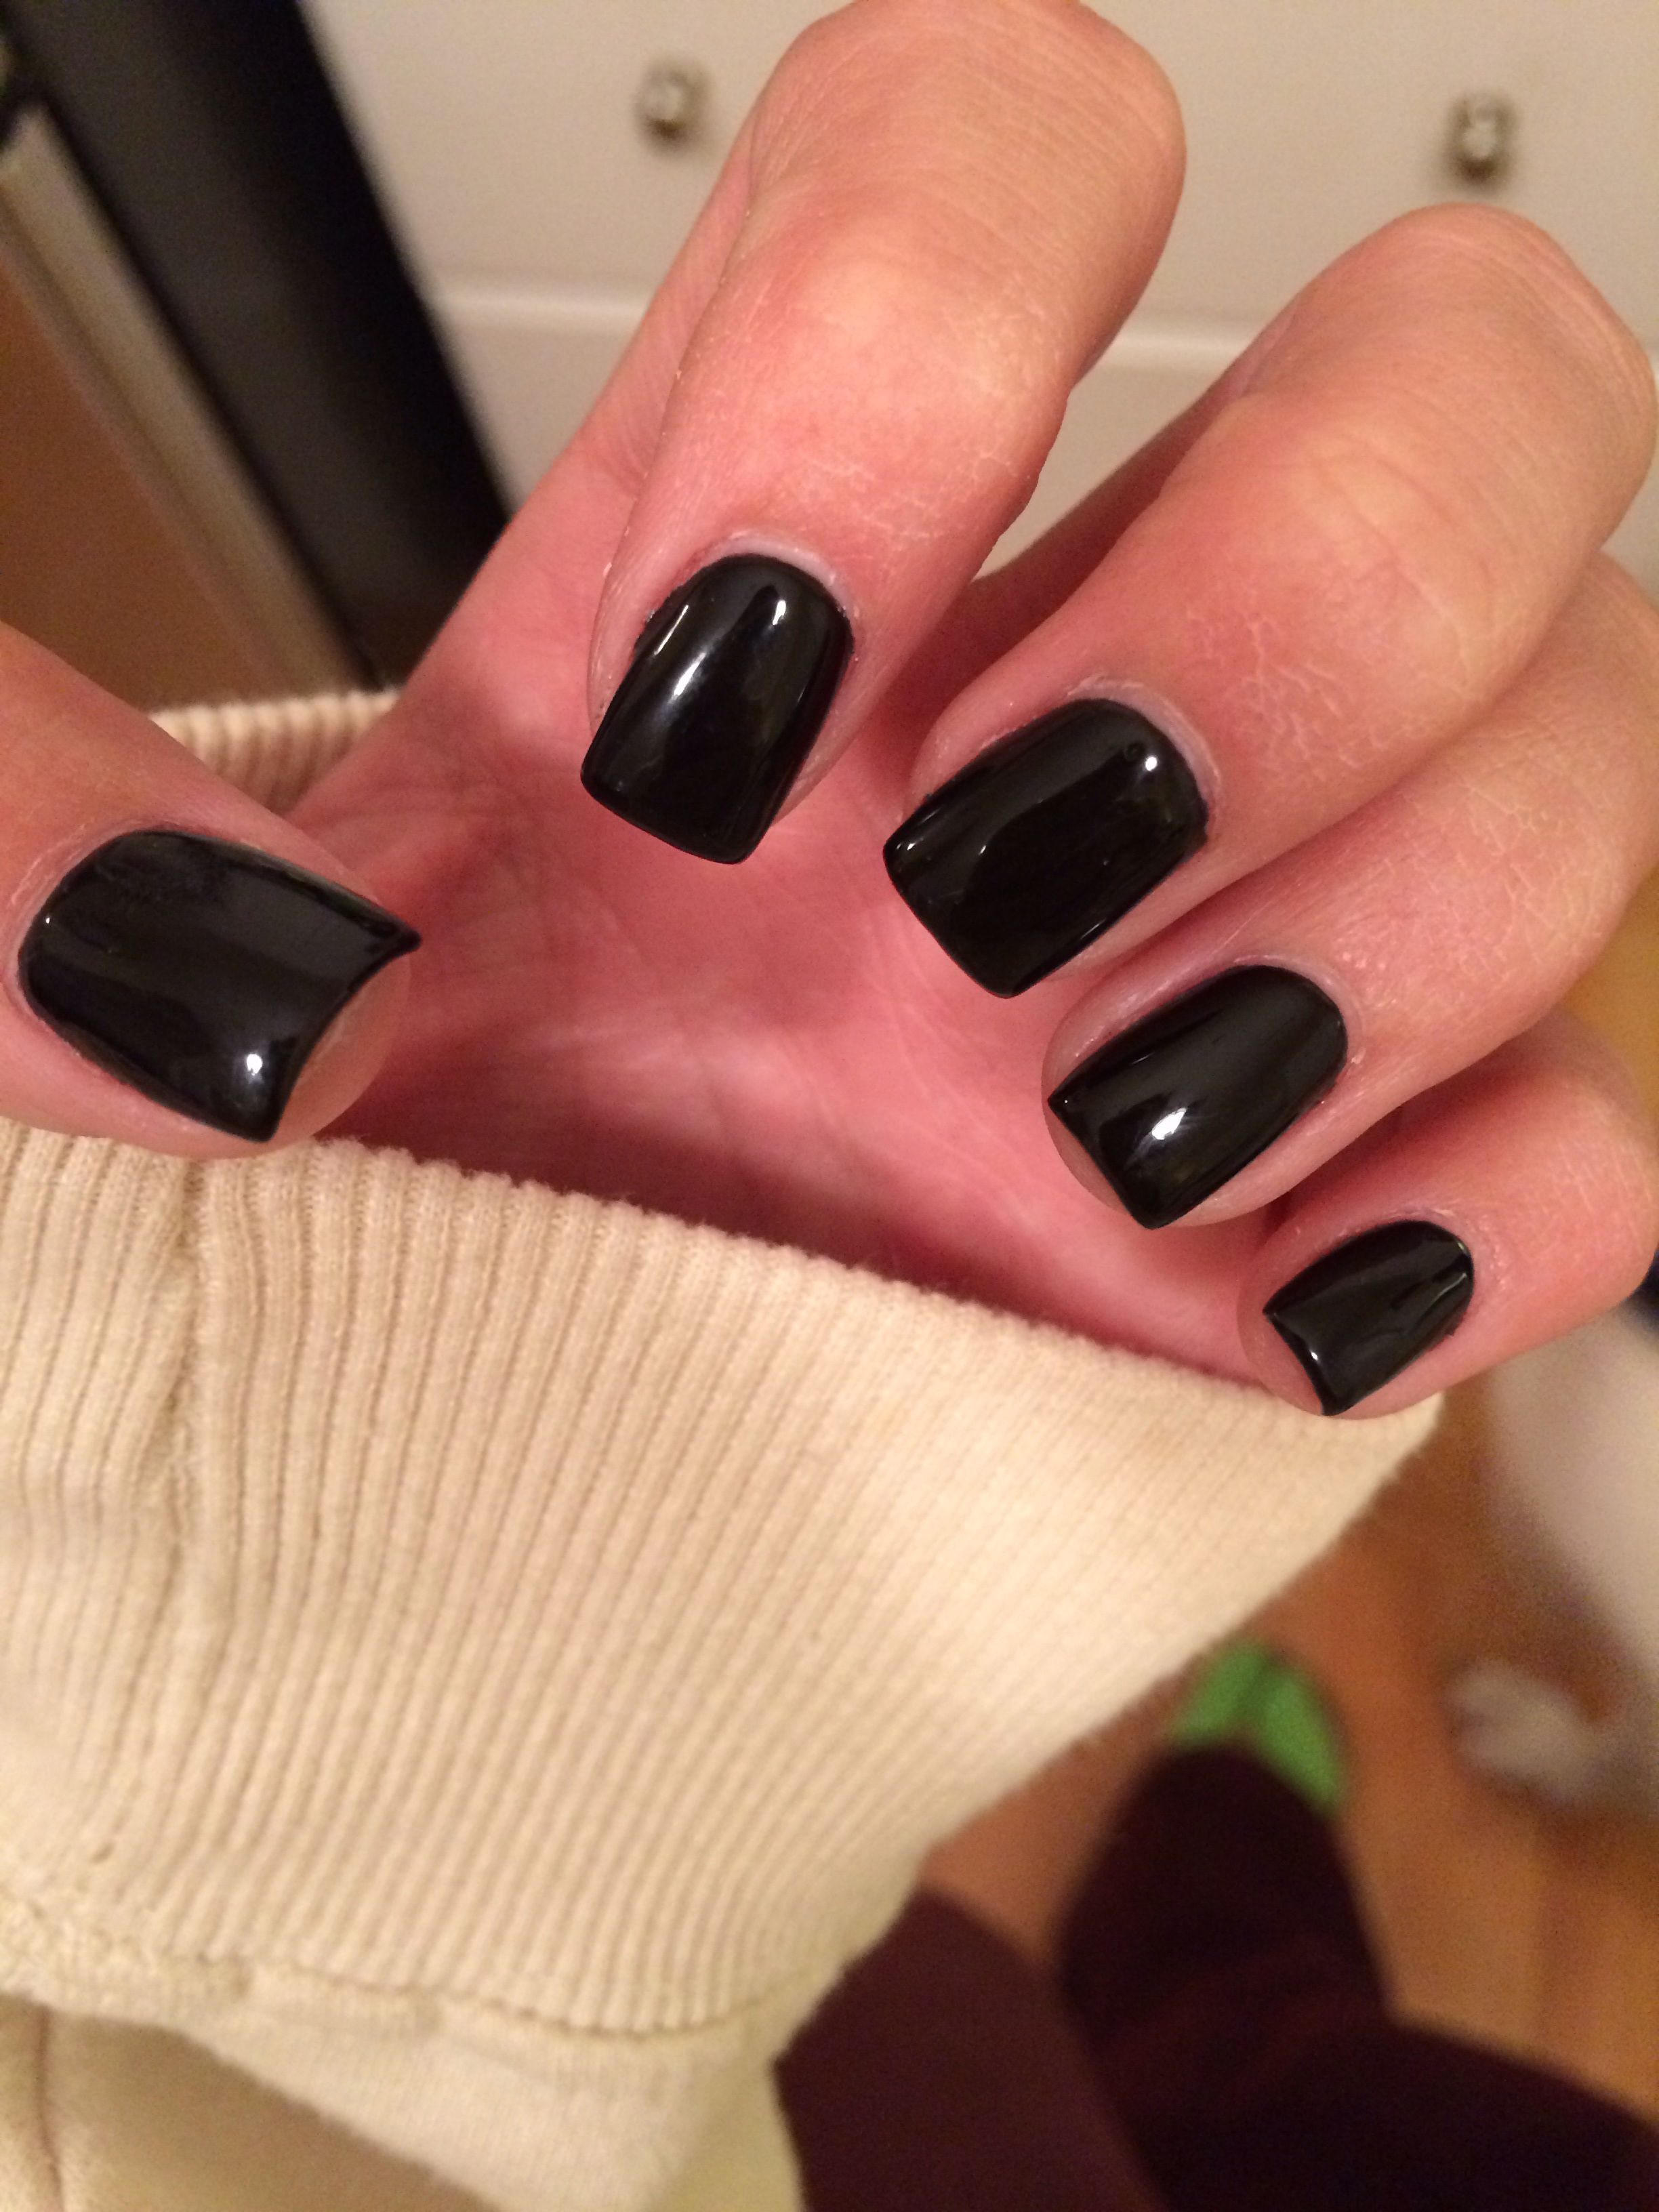 Simple black gel nails. Short and square. Perf. | Nails | Pinterest ...